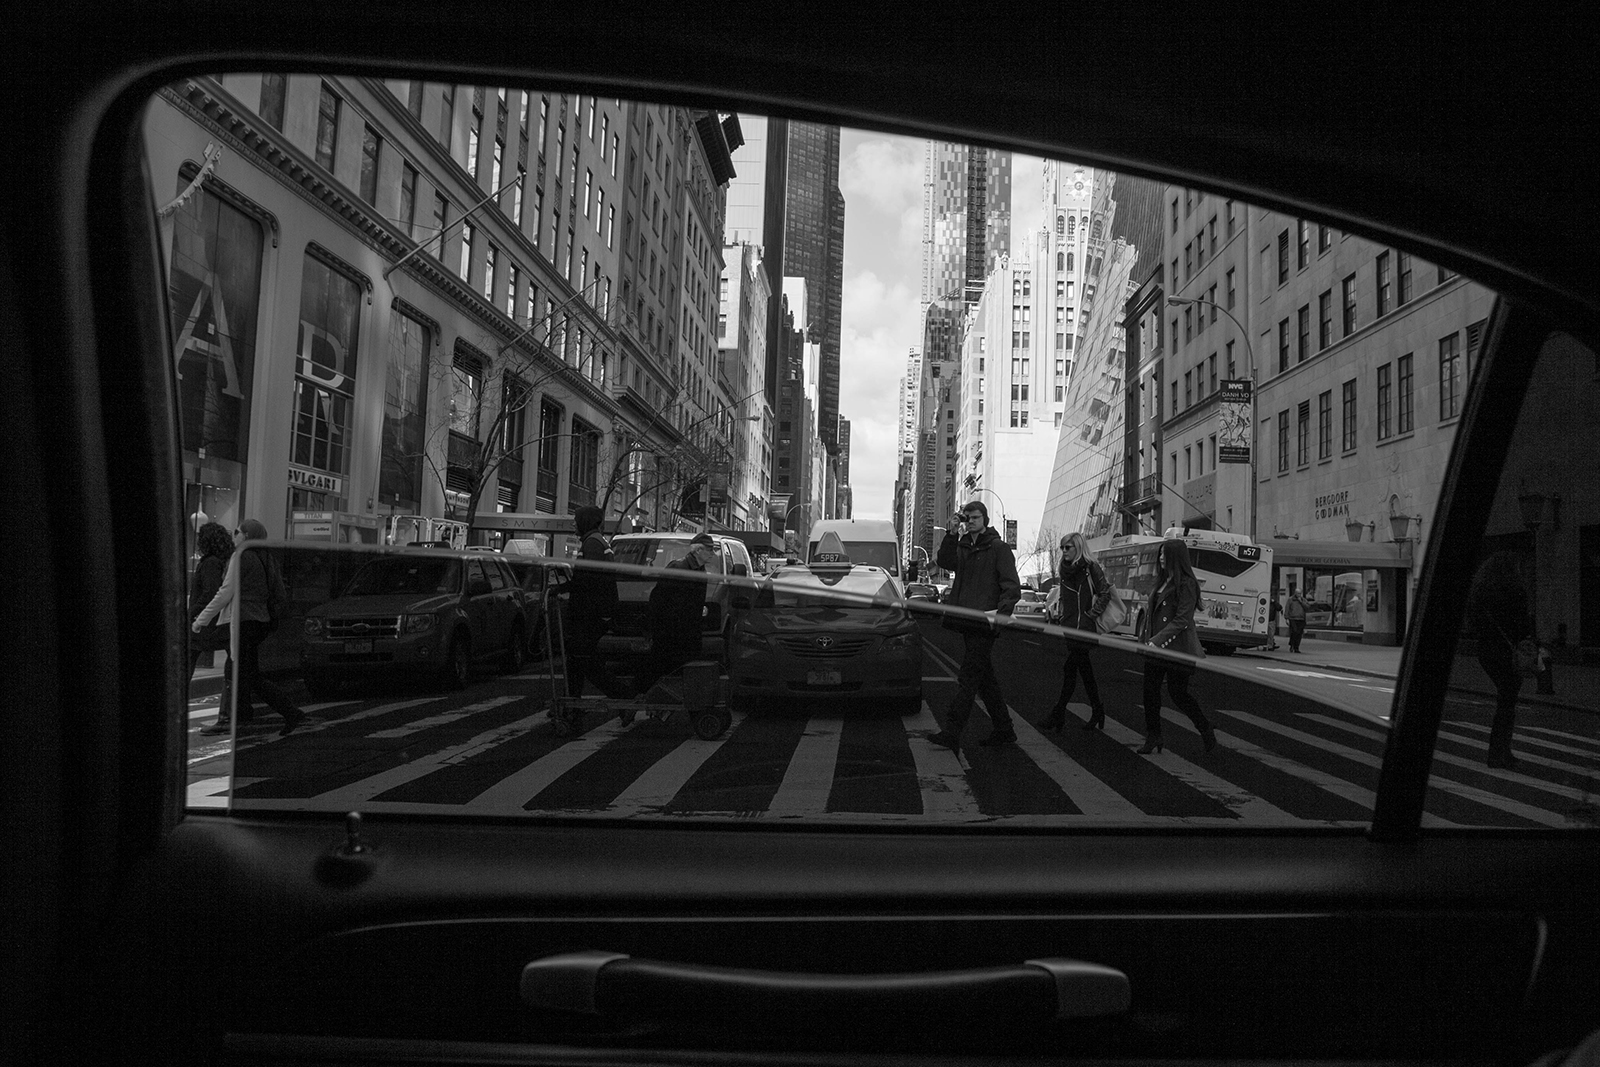 View from our Limo in the financial district